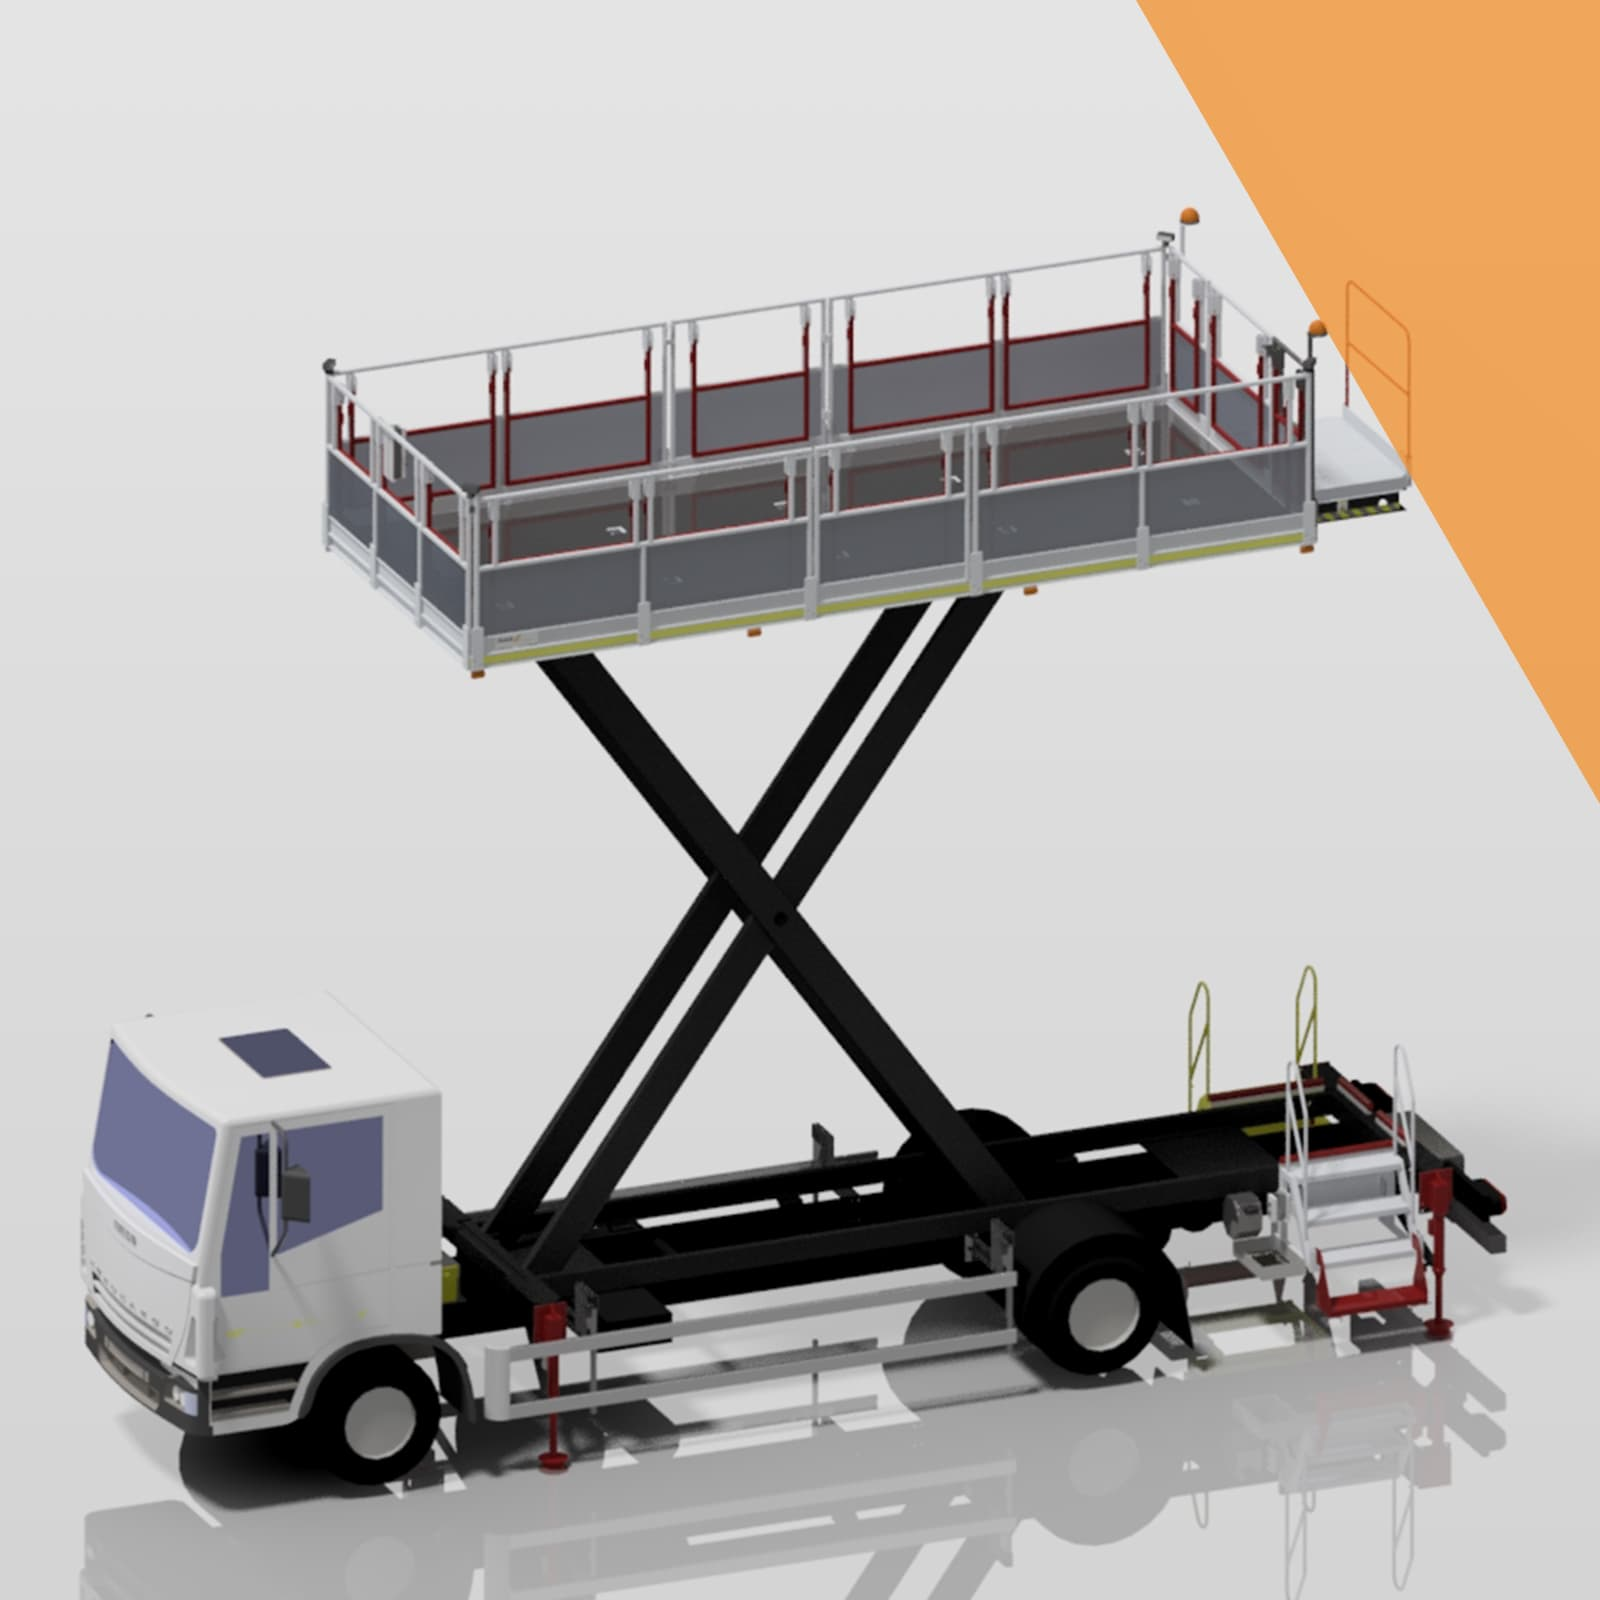 Large vehicle mounted scissor lifts